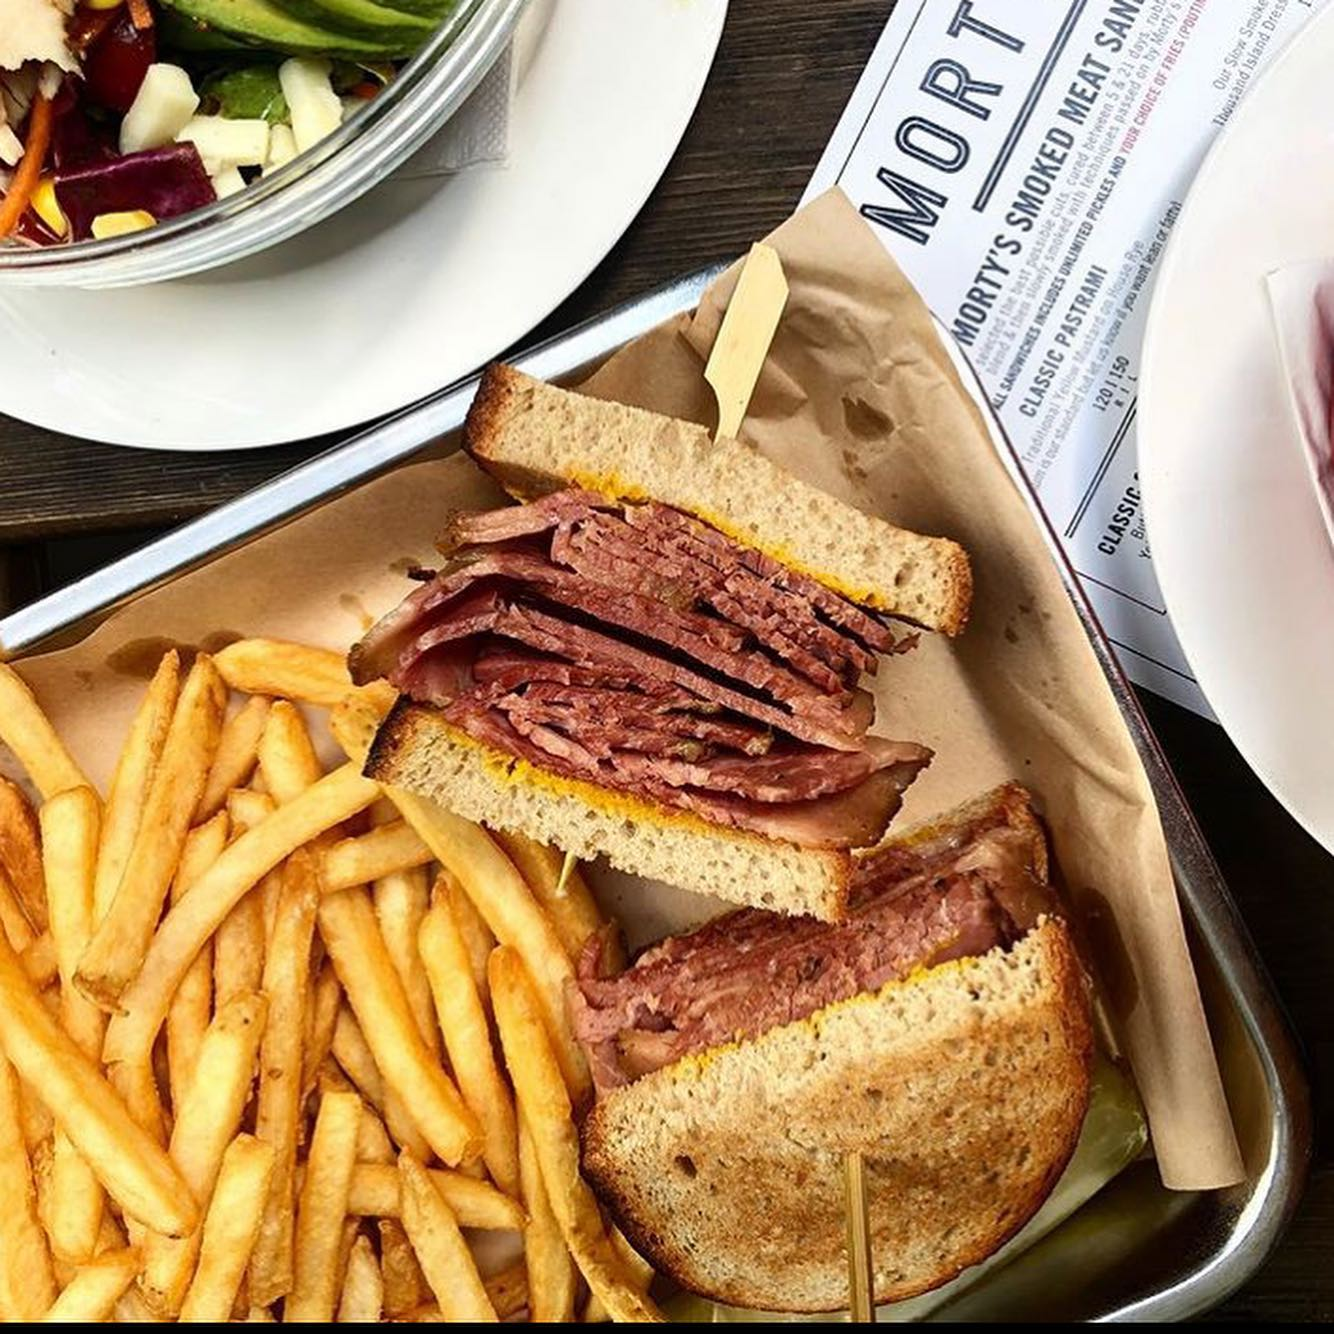 Ruben sandwich and fries